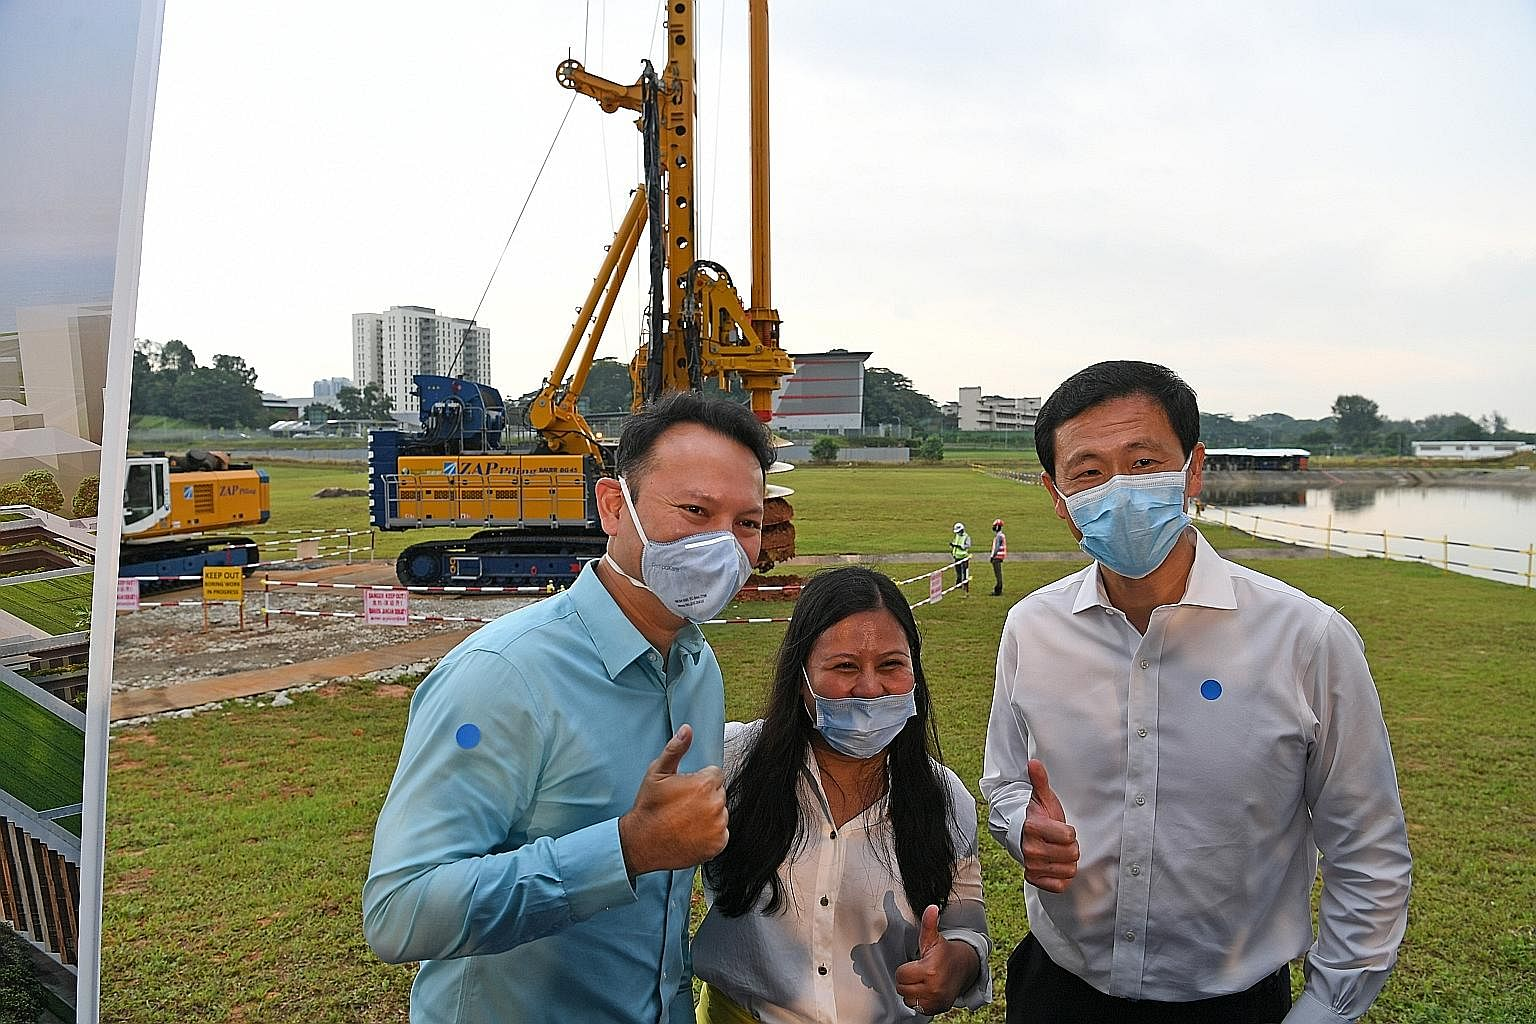 (From left) Senior Minister of State for Defence and Manpower Zaqy Mohamad, MP for Sembawang GRC Mariam Jaafar and Transport Minister Ong Ye Kung at the parcel of land that will be the site of the Woodlands North RTS station.